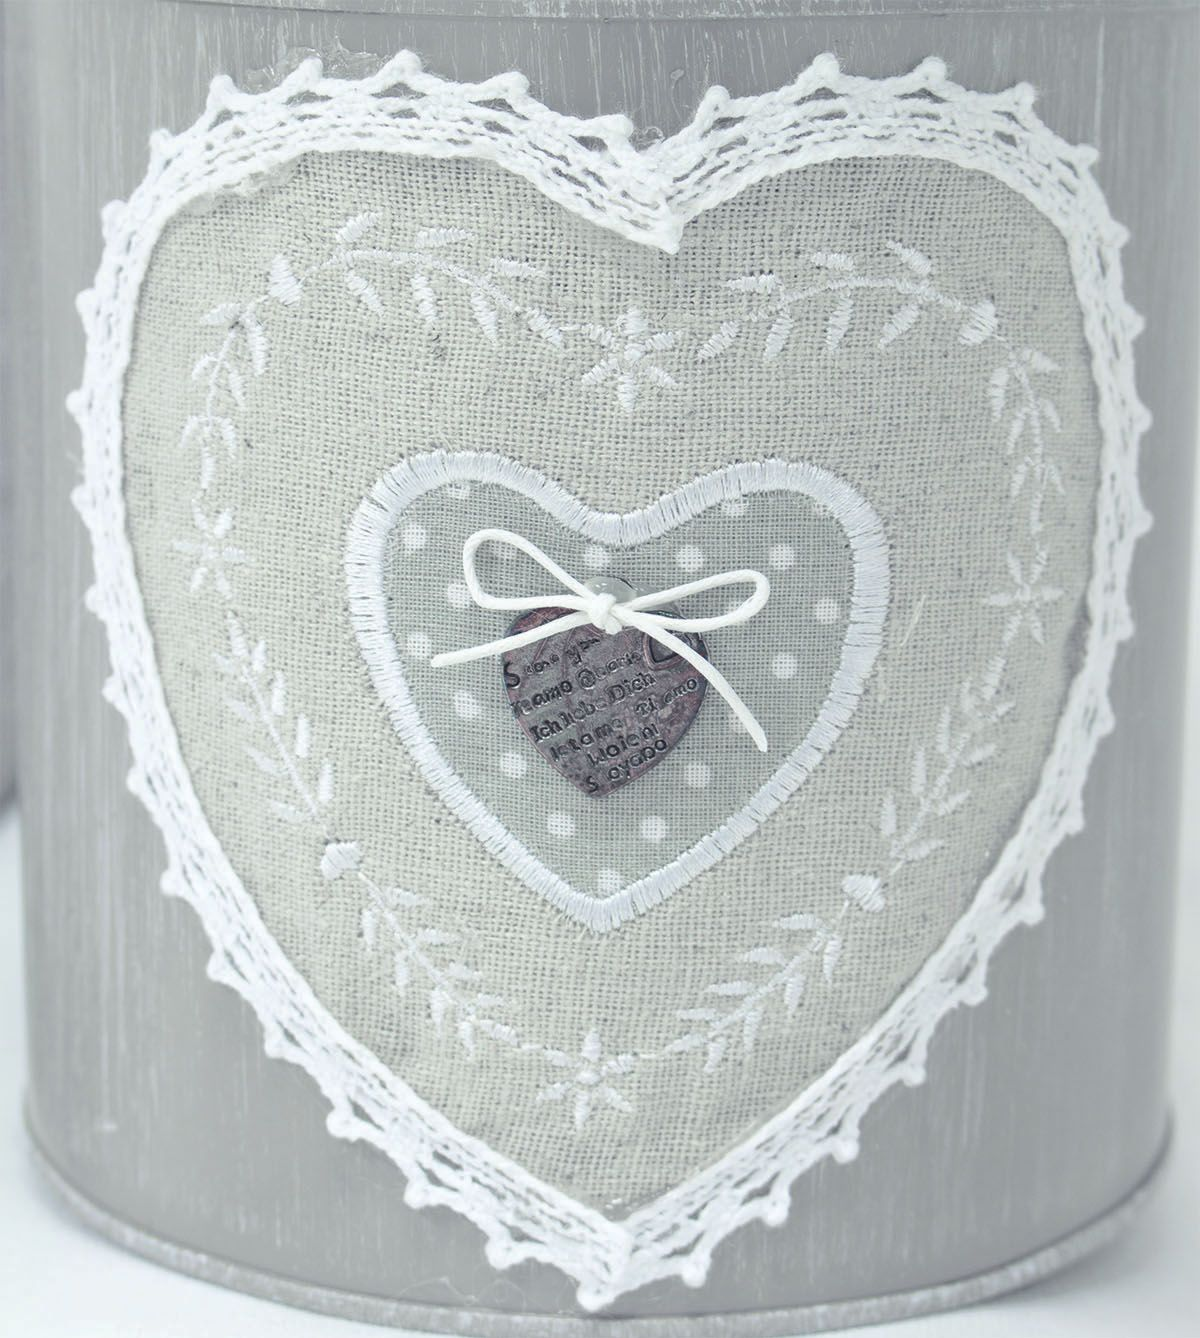 Our designers took inspiration from home-made lace designs such as ...